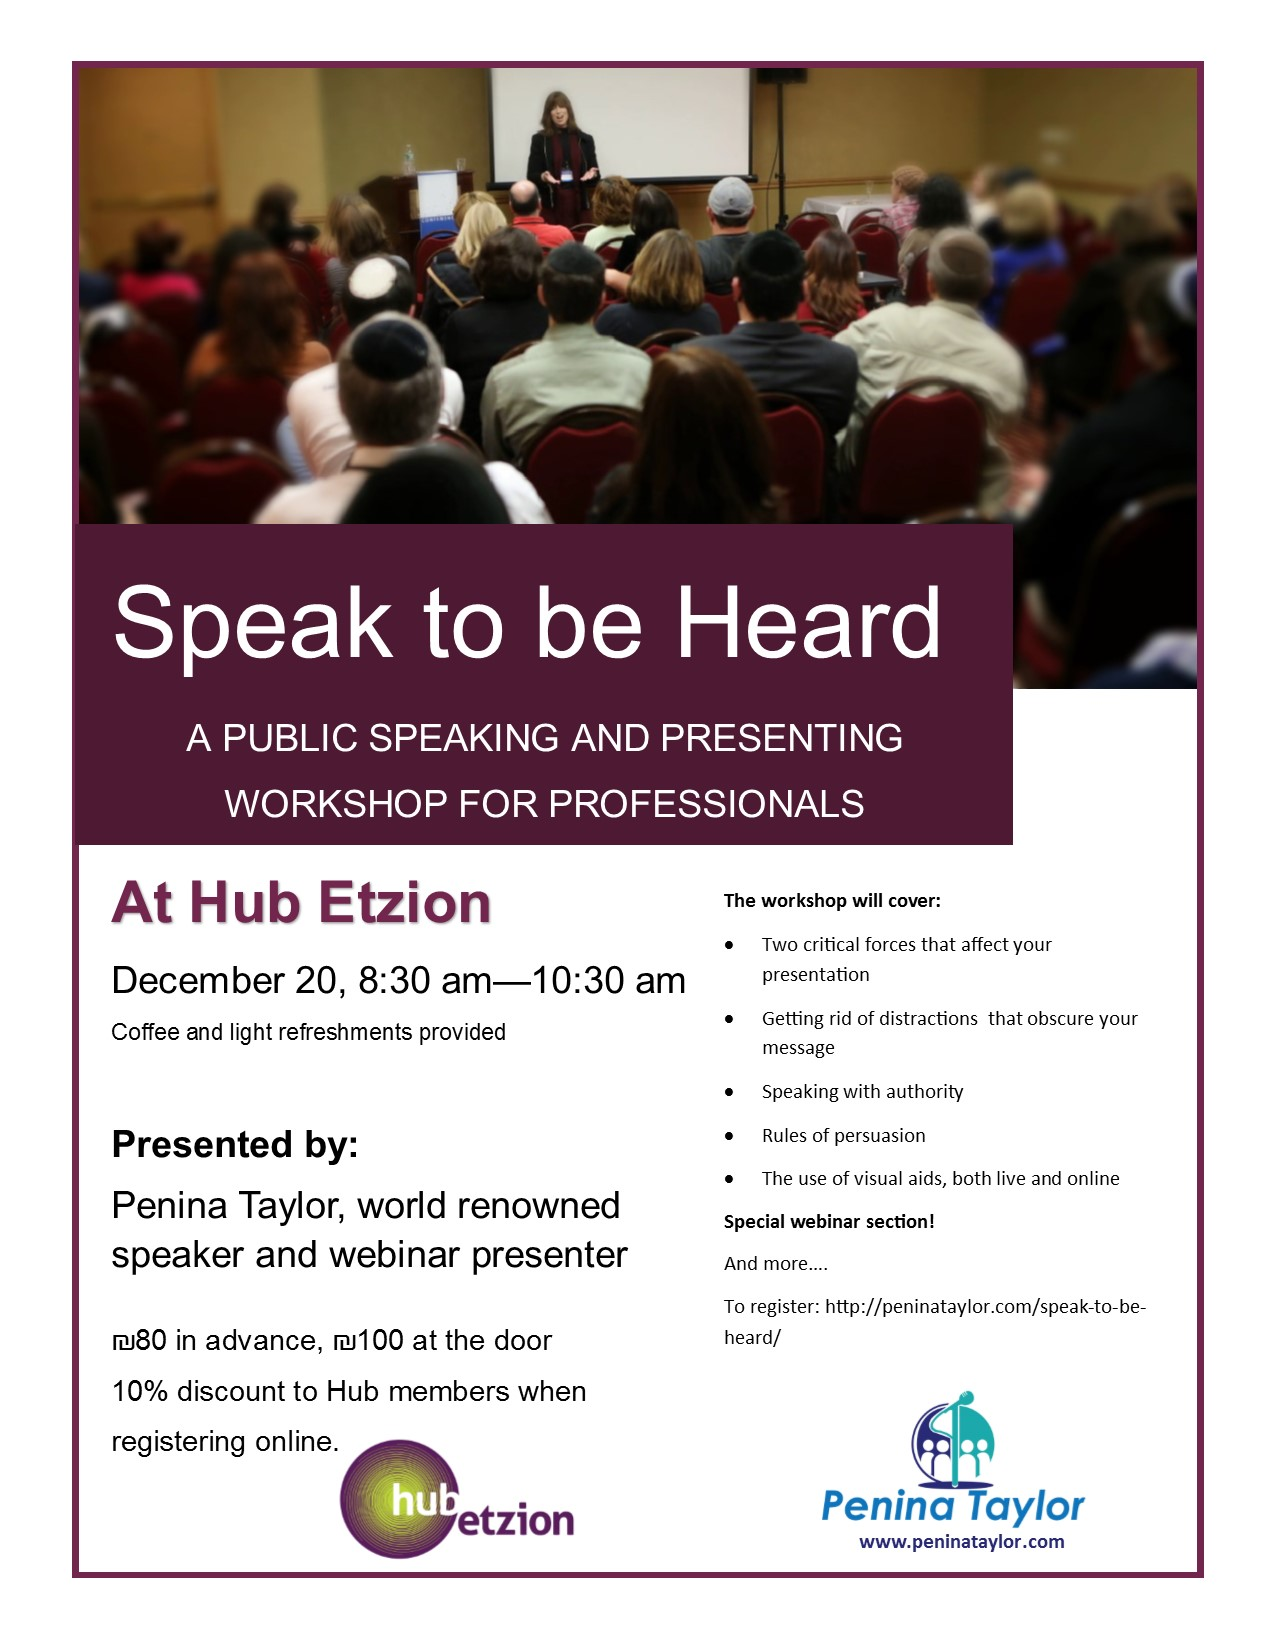 Speak and be heard flyer